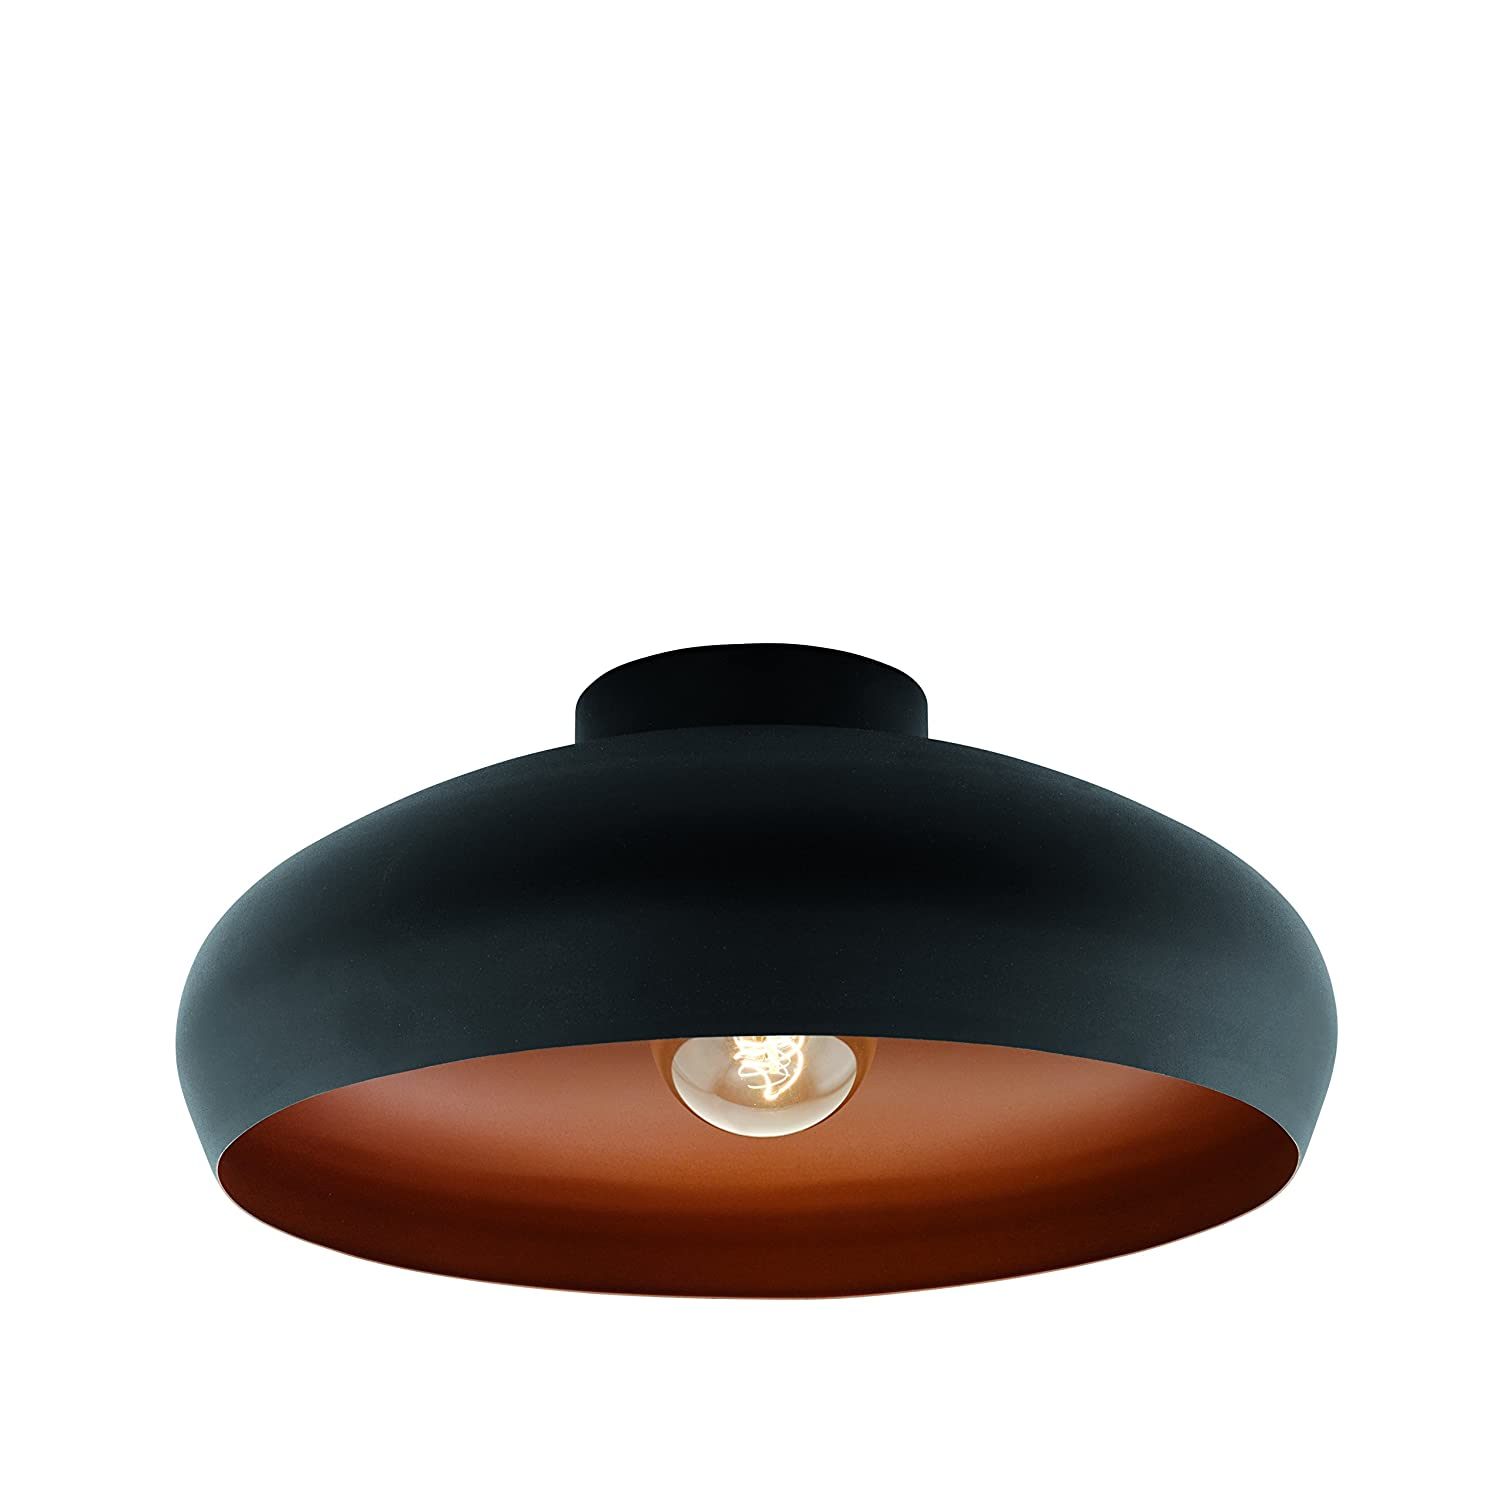 Eglo Mogano Ceiling Light E27 Black, Copper [Energy Class D] 94547